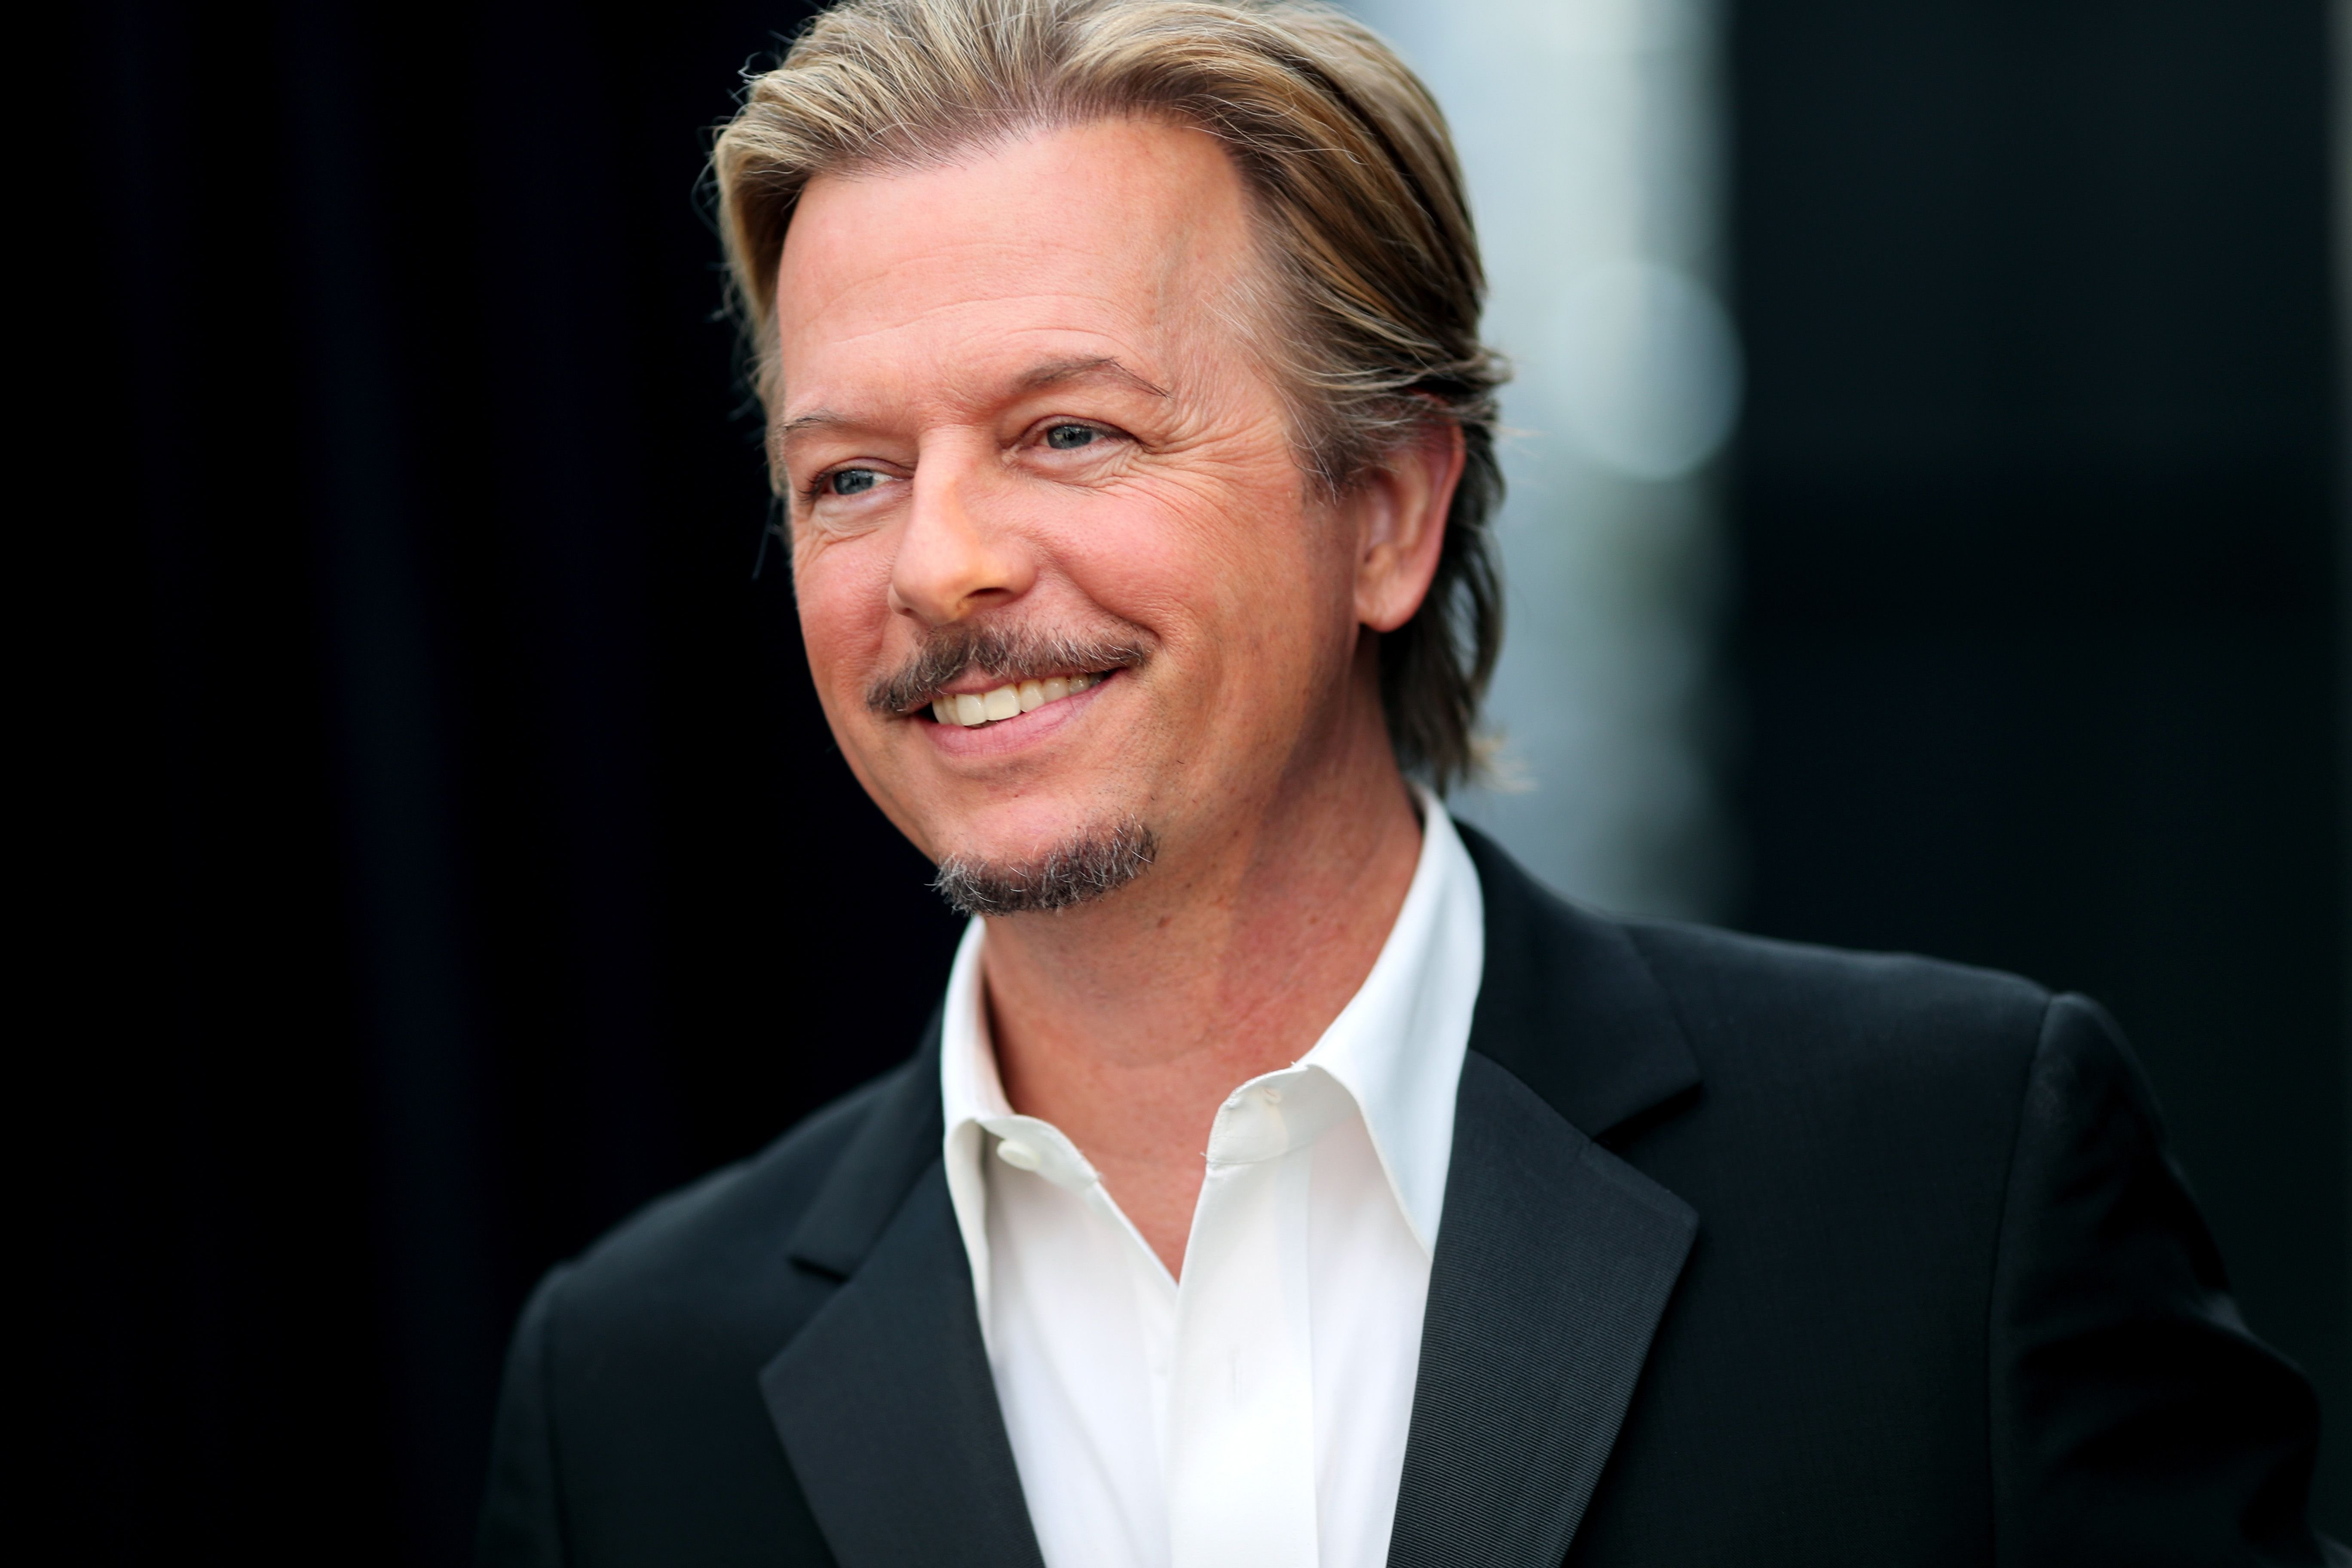 David Spade at The Comedy Central Roast of Rob Lowe in 2016 in Los Angeles, California | Source: Getty Images